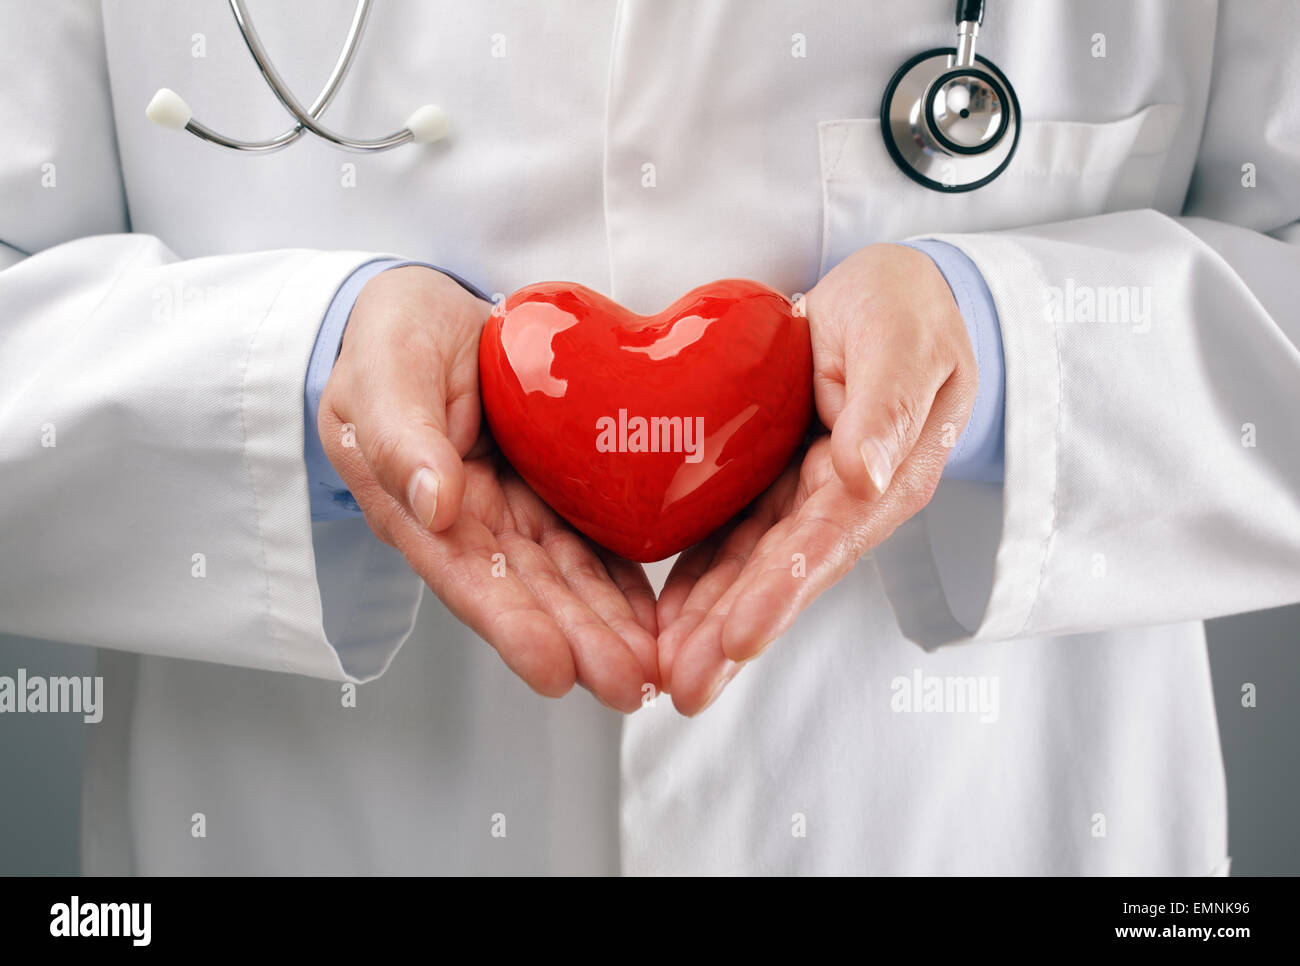 Doctor holding heart with care - Stock Image